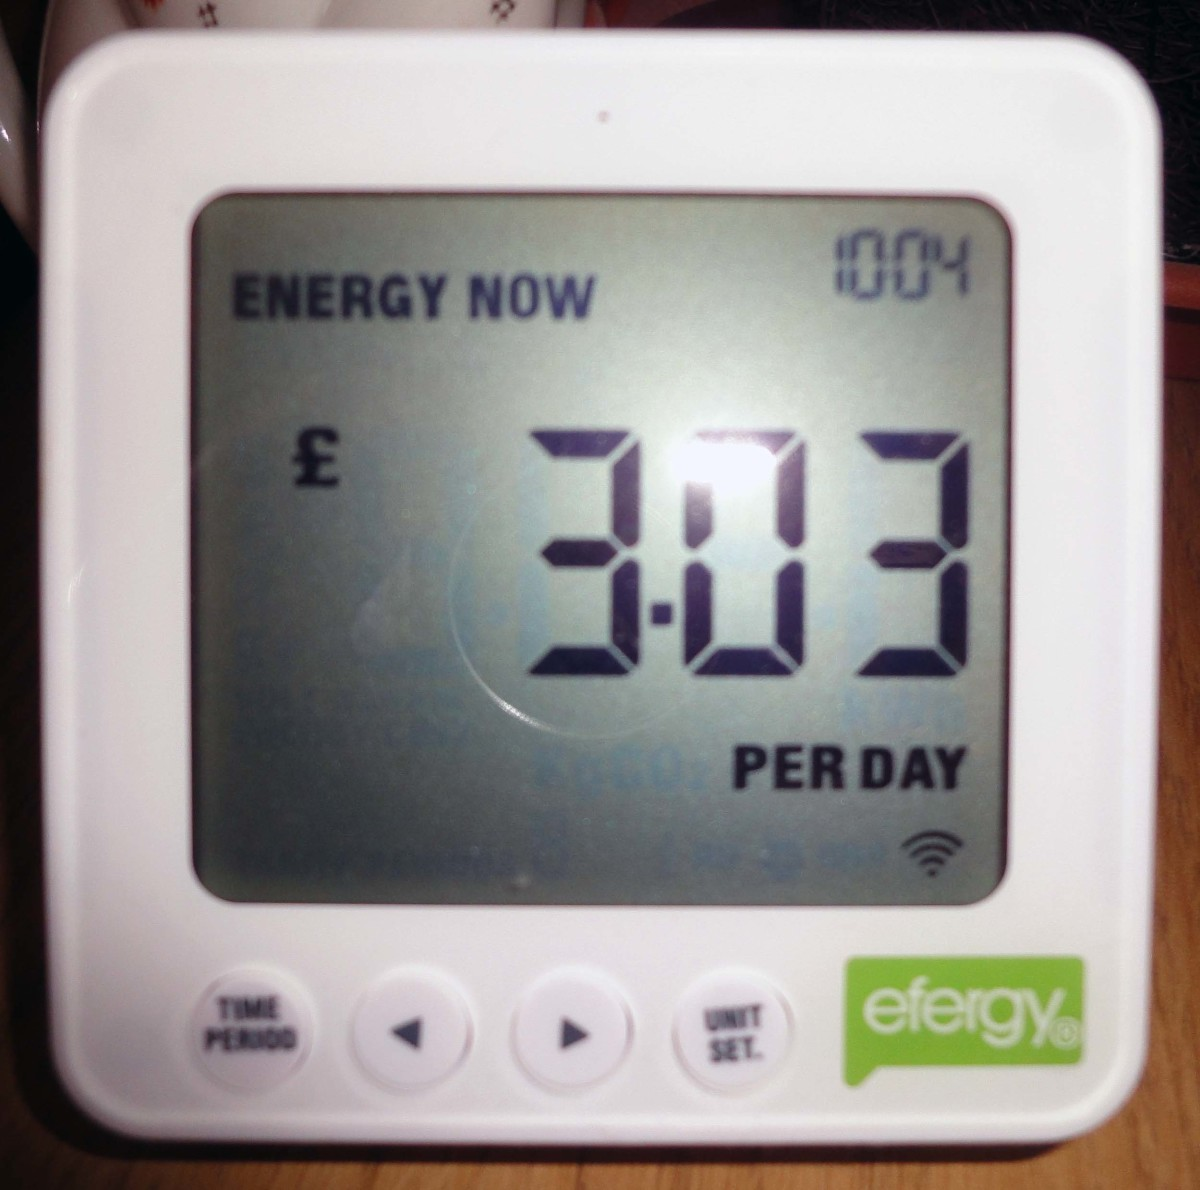 As previous plus when the main TV in the living room is switched on e.g. an extra 4p an hour.